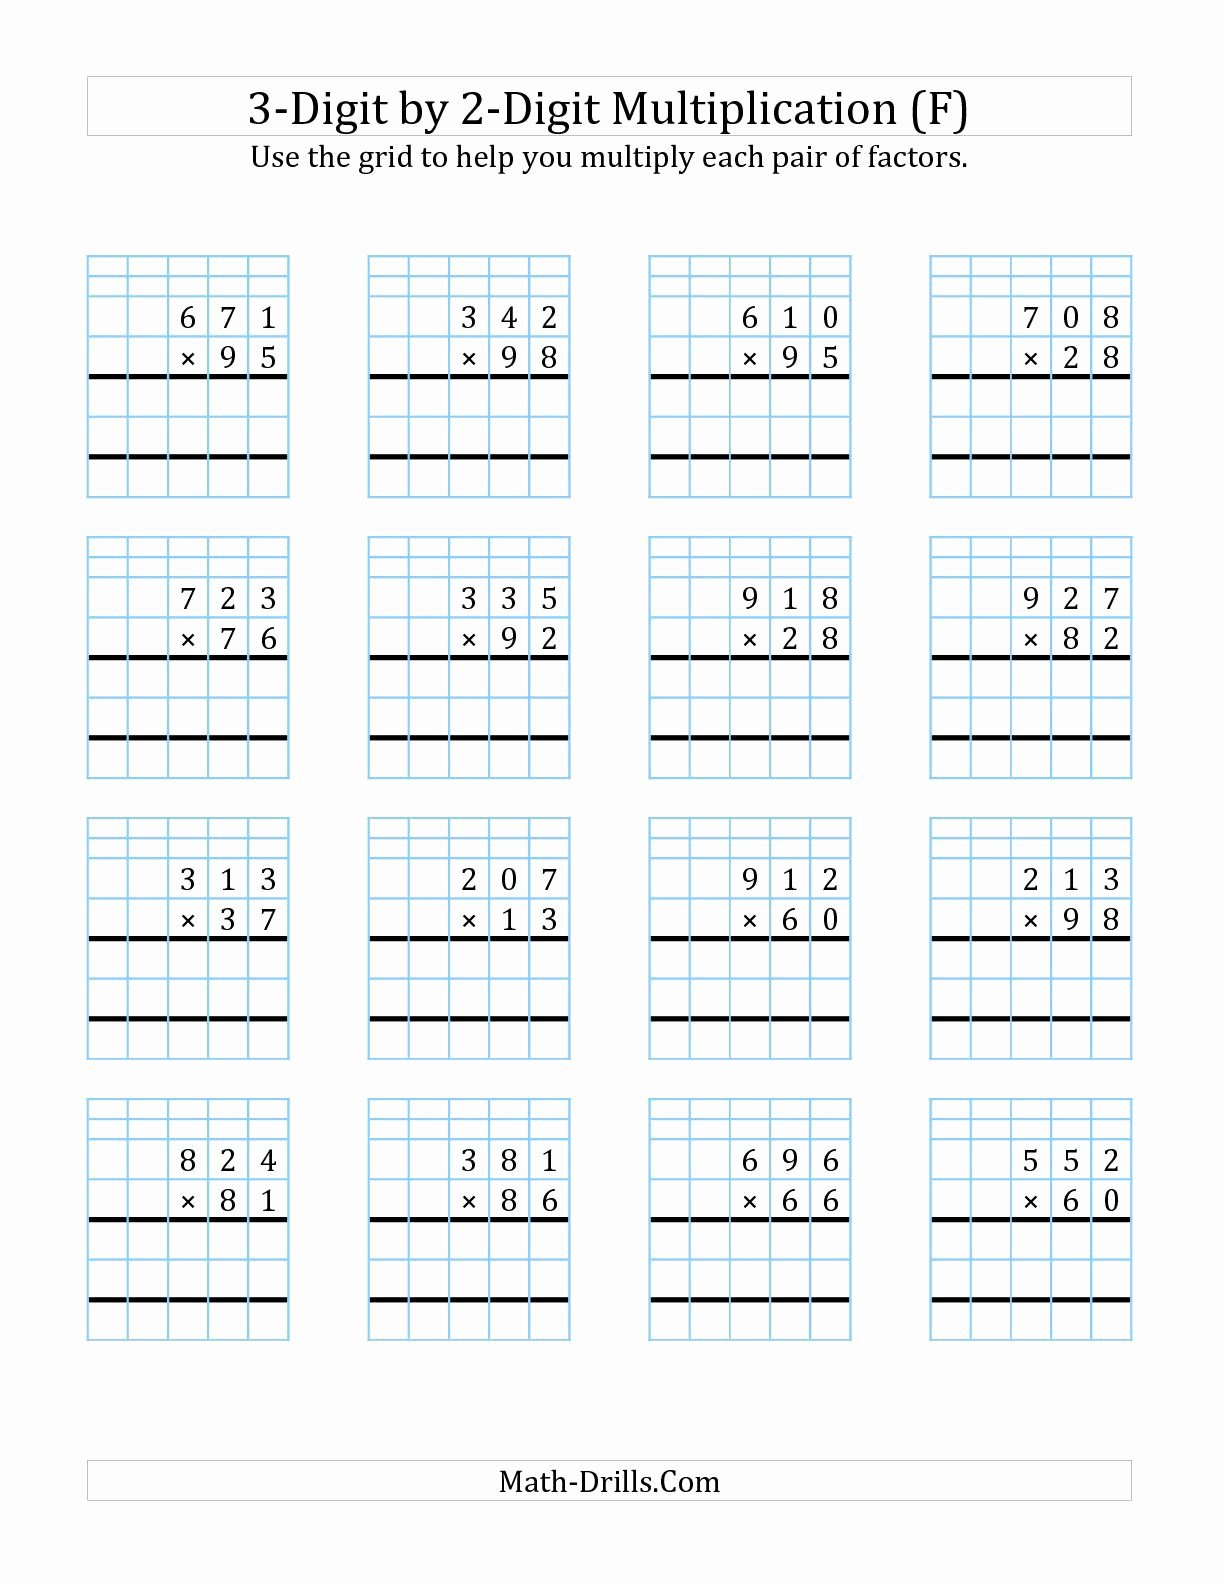 3 Digit by 2 Digit Multiplication Worksheets with Grids Awesome the 3 Digit by 2 Digit Multiplication with Grid Support F